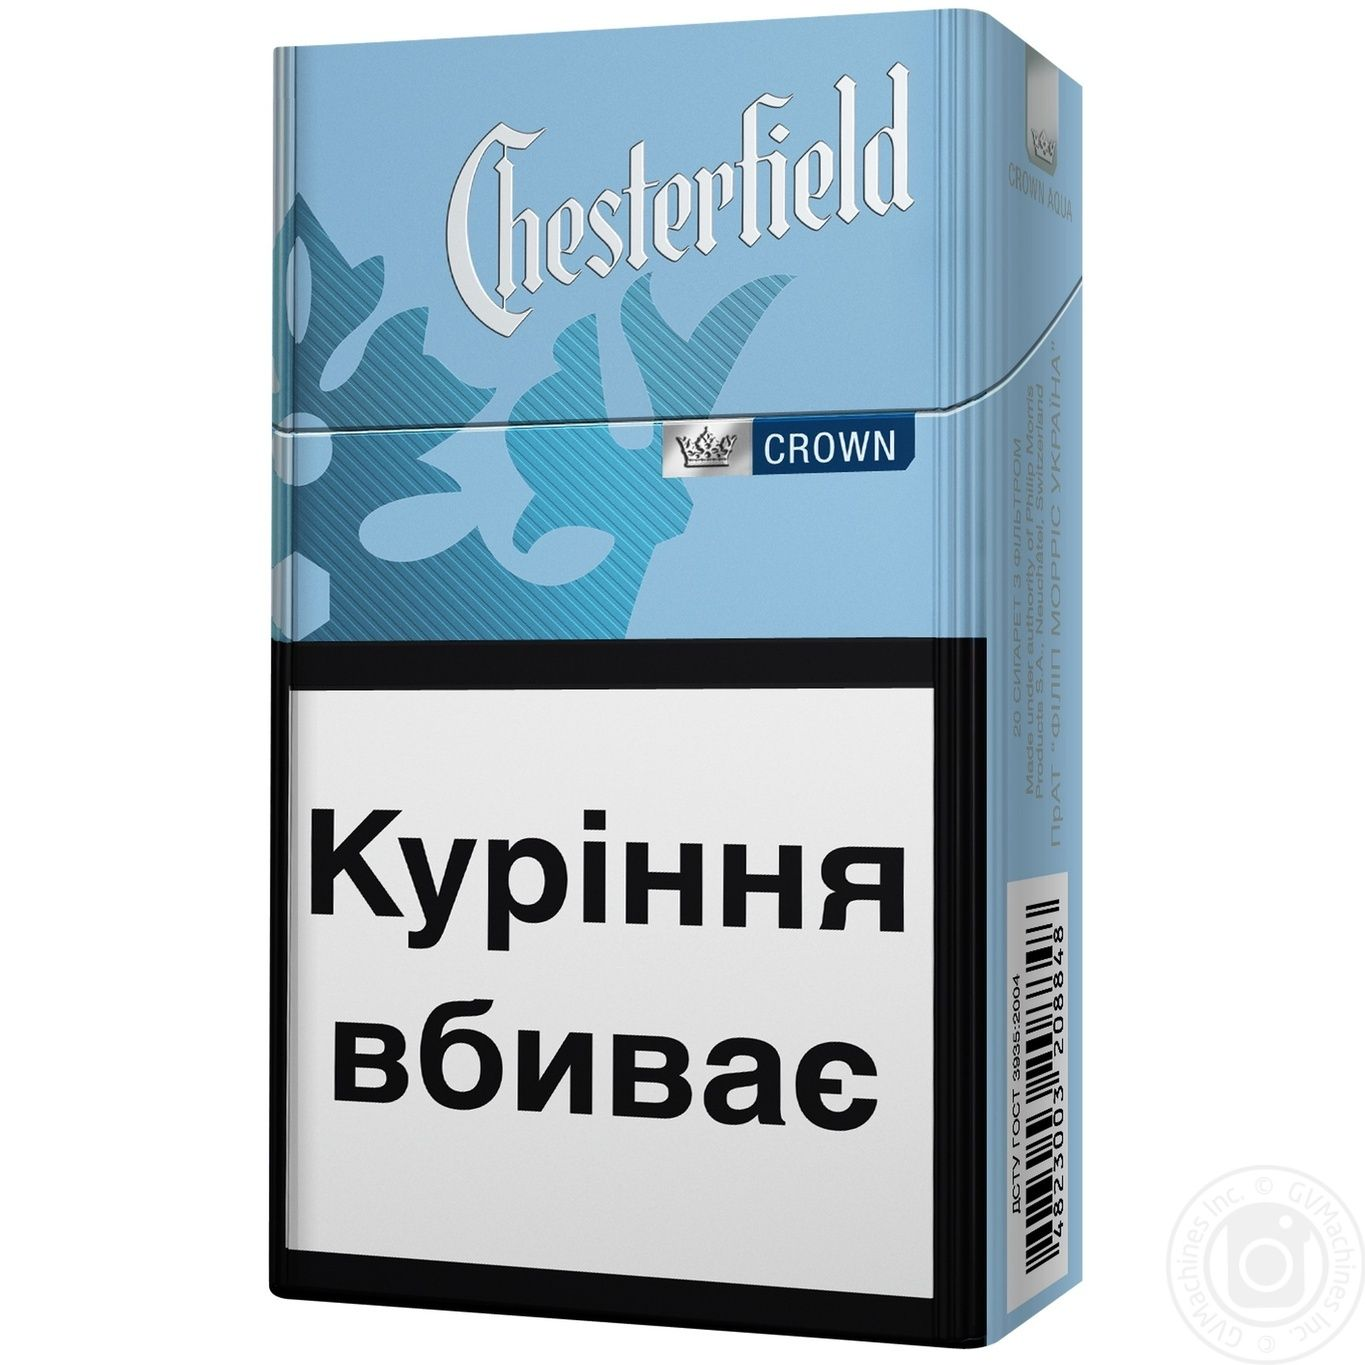 Buy American cigarettes Pall Mall in UK